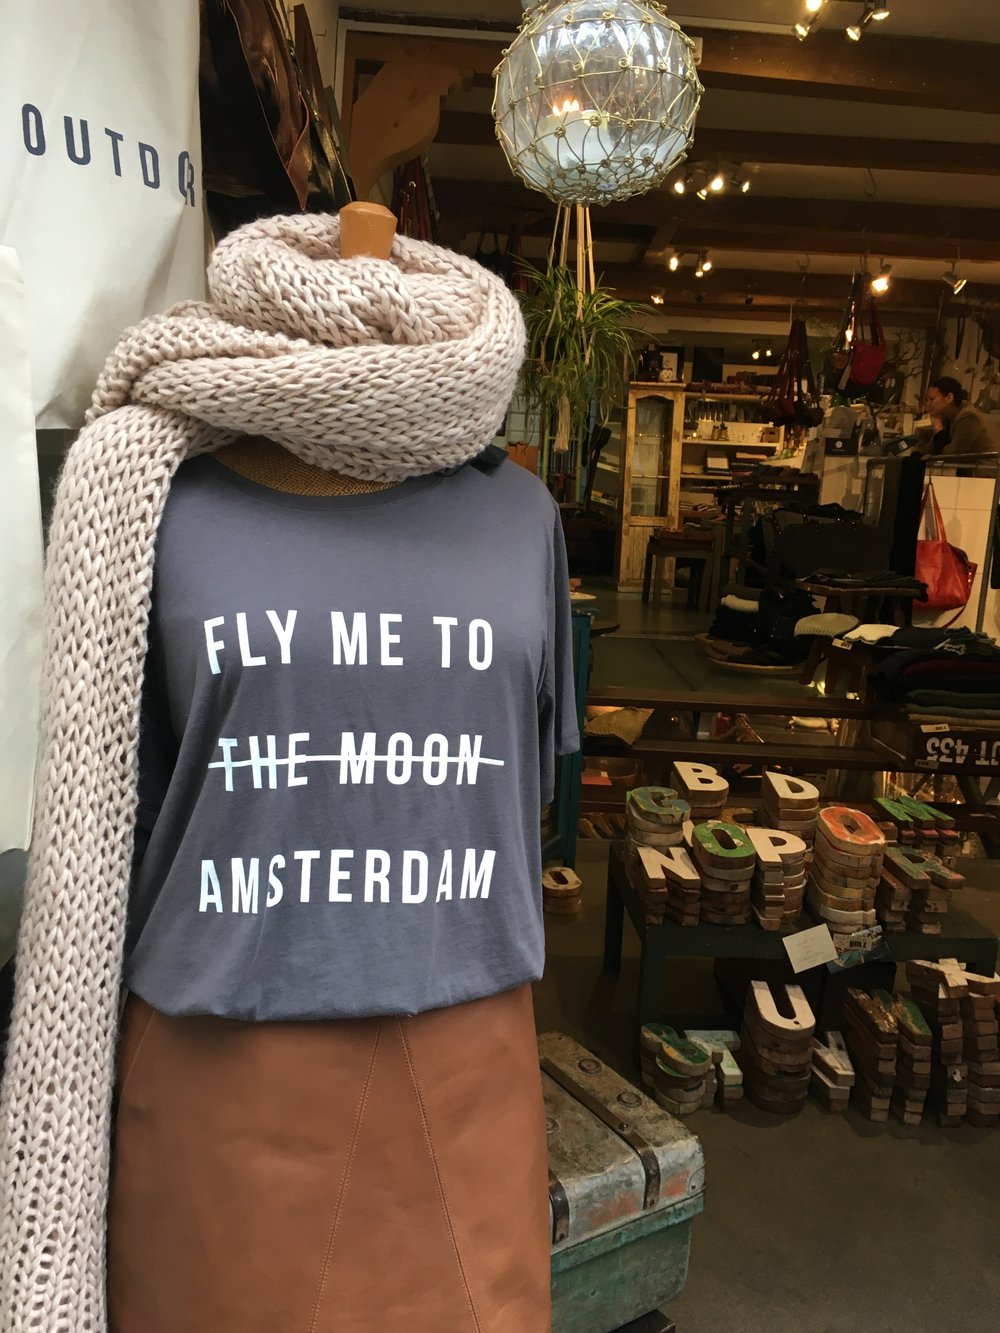 ~See you next time Amsterdam! (I should have bought this shirt...)